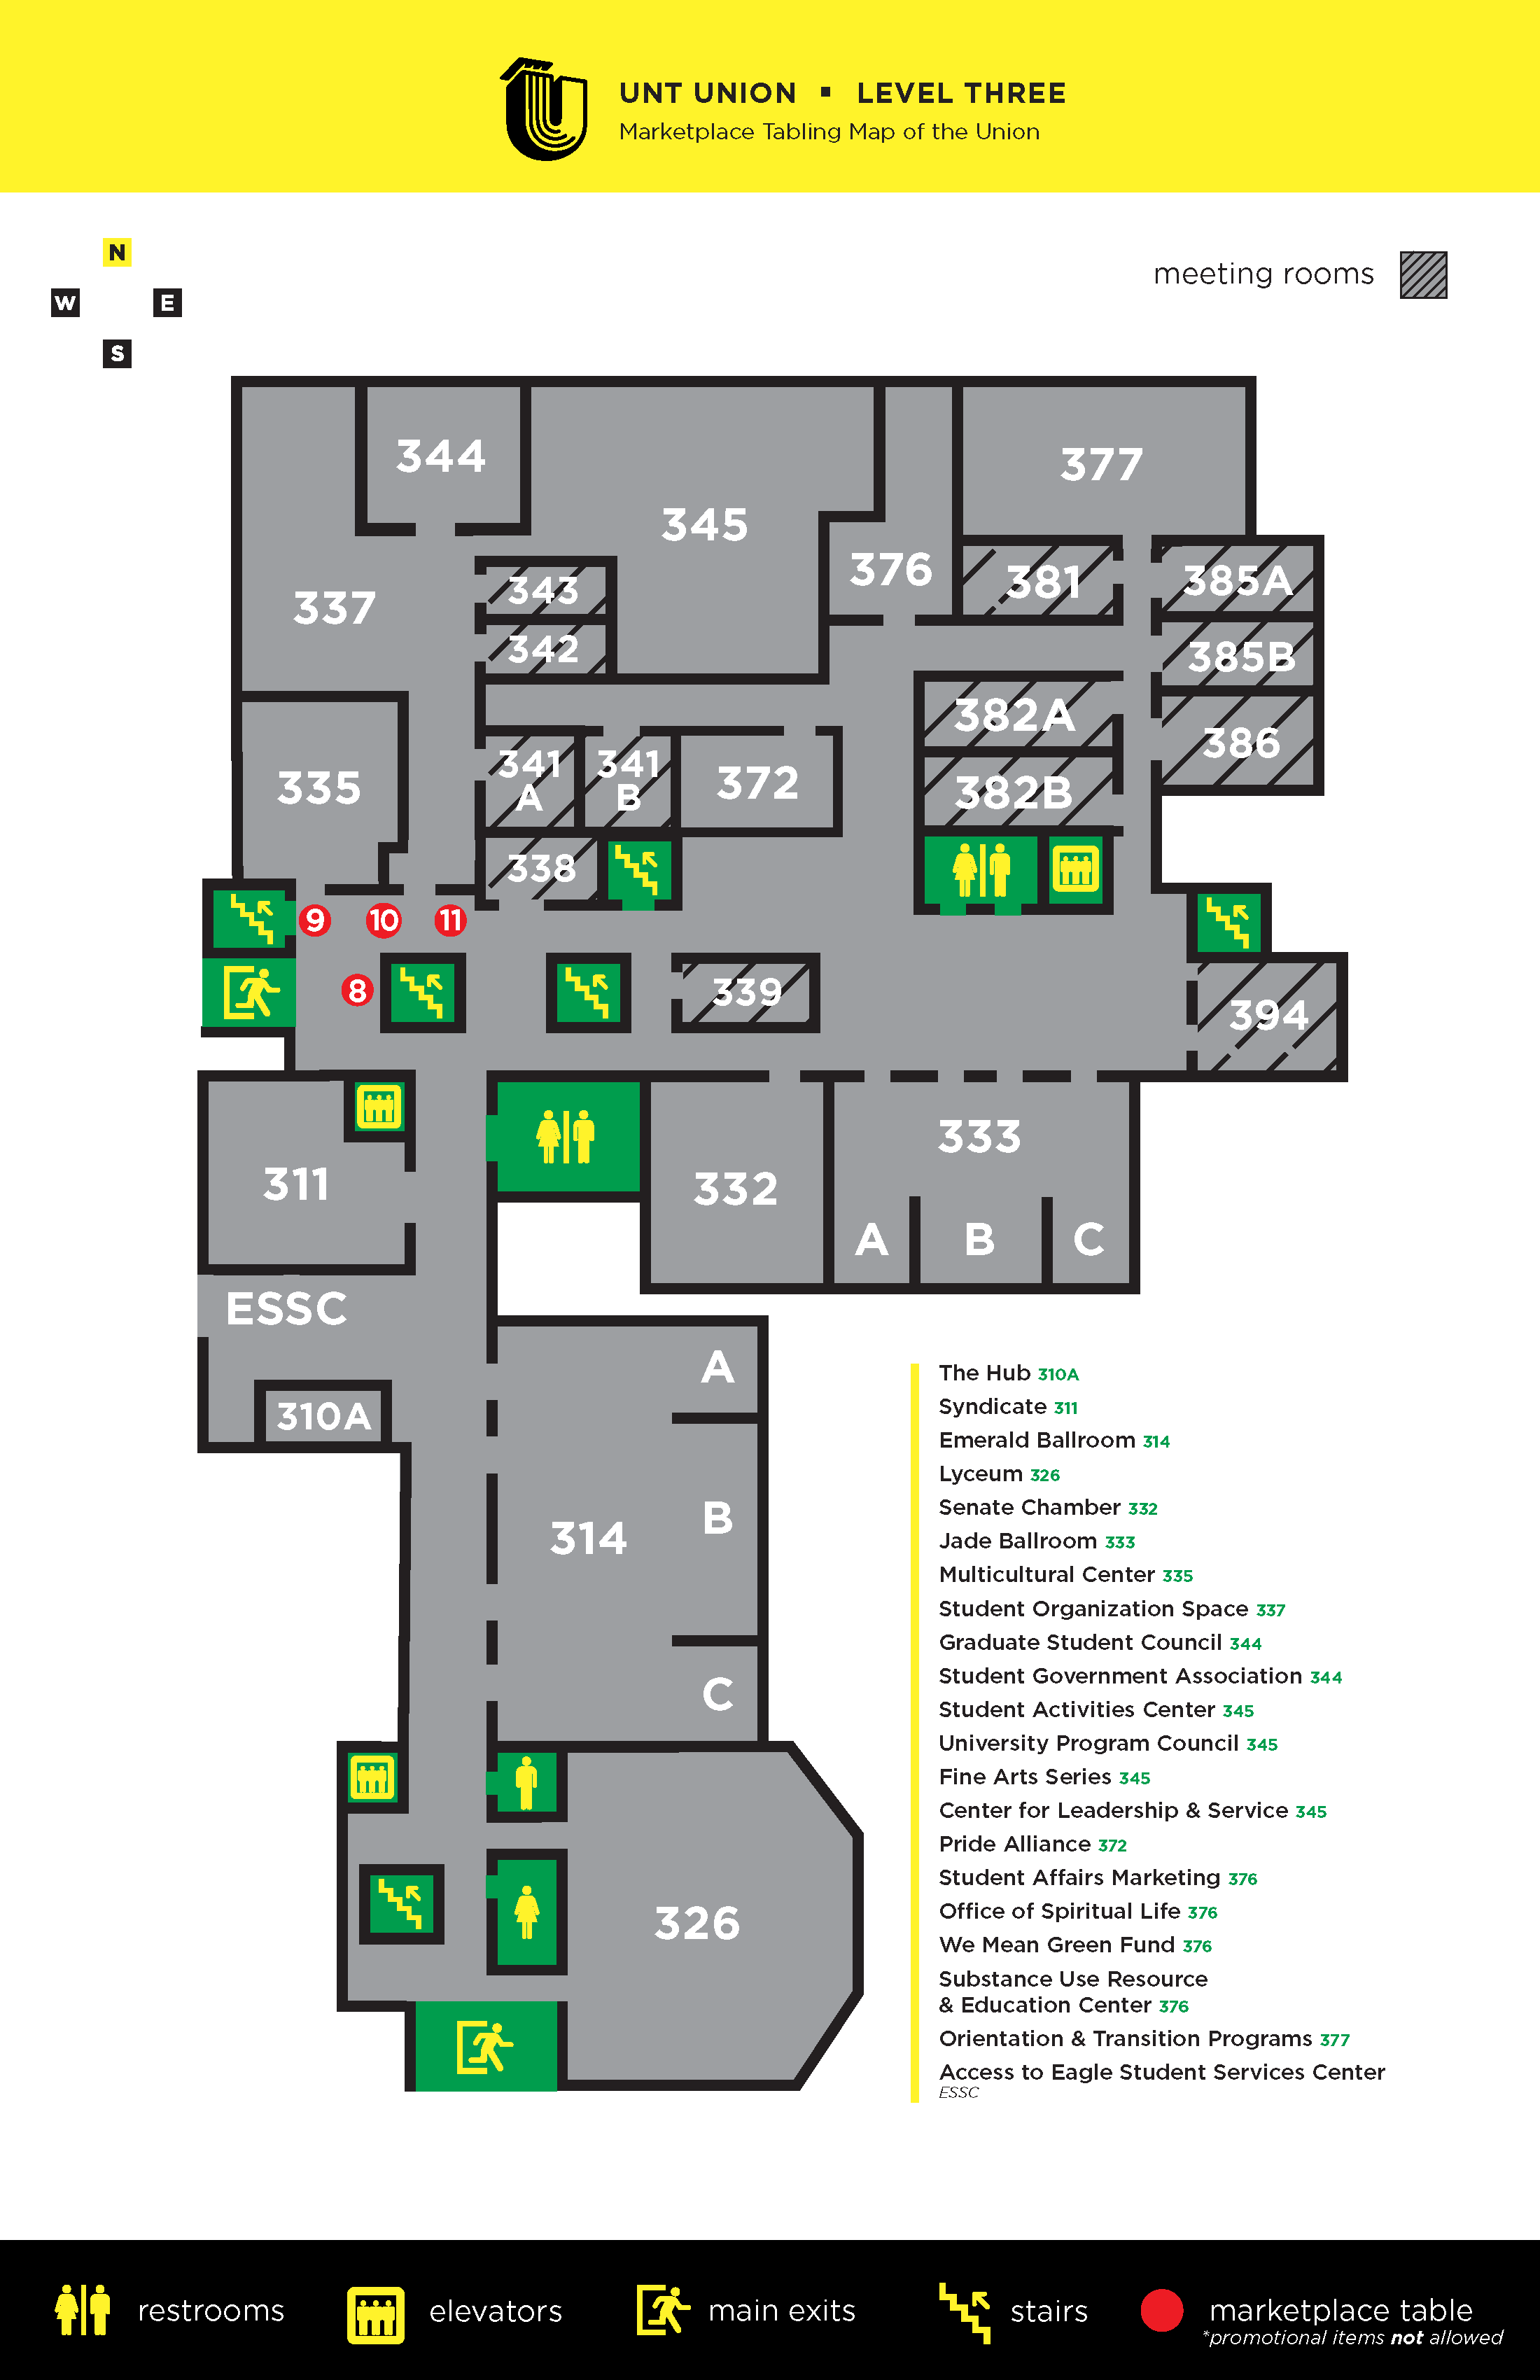 Union Level 3 Map